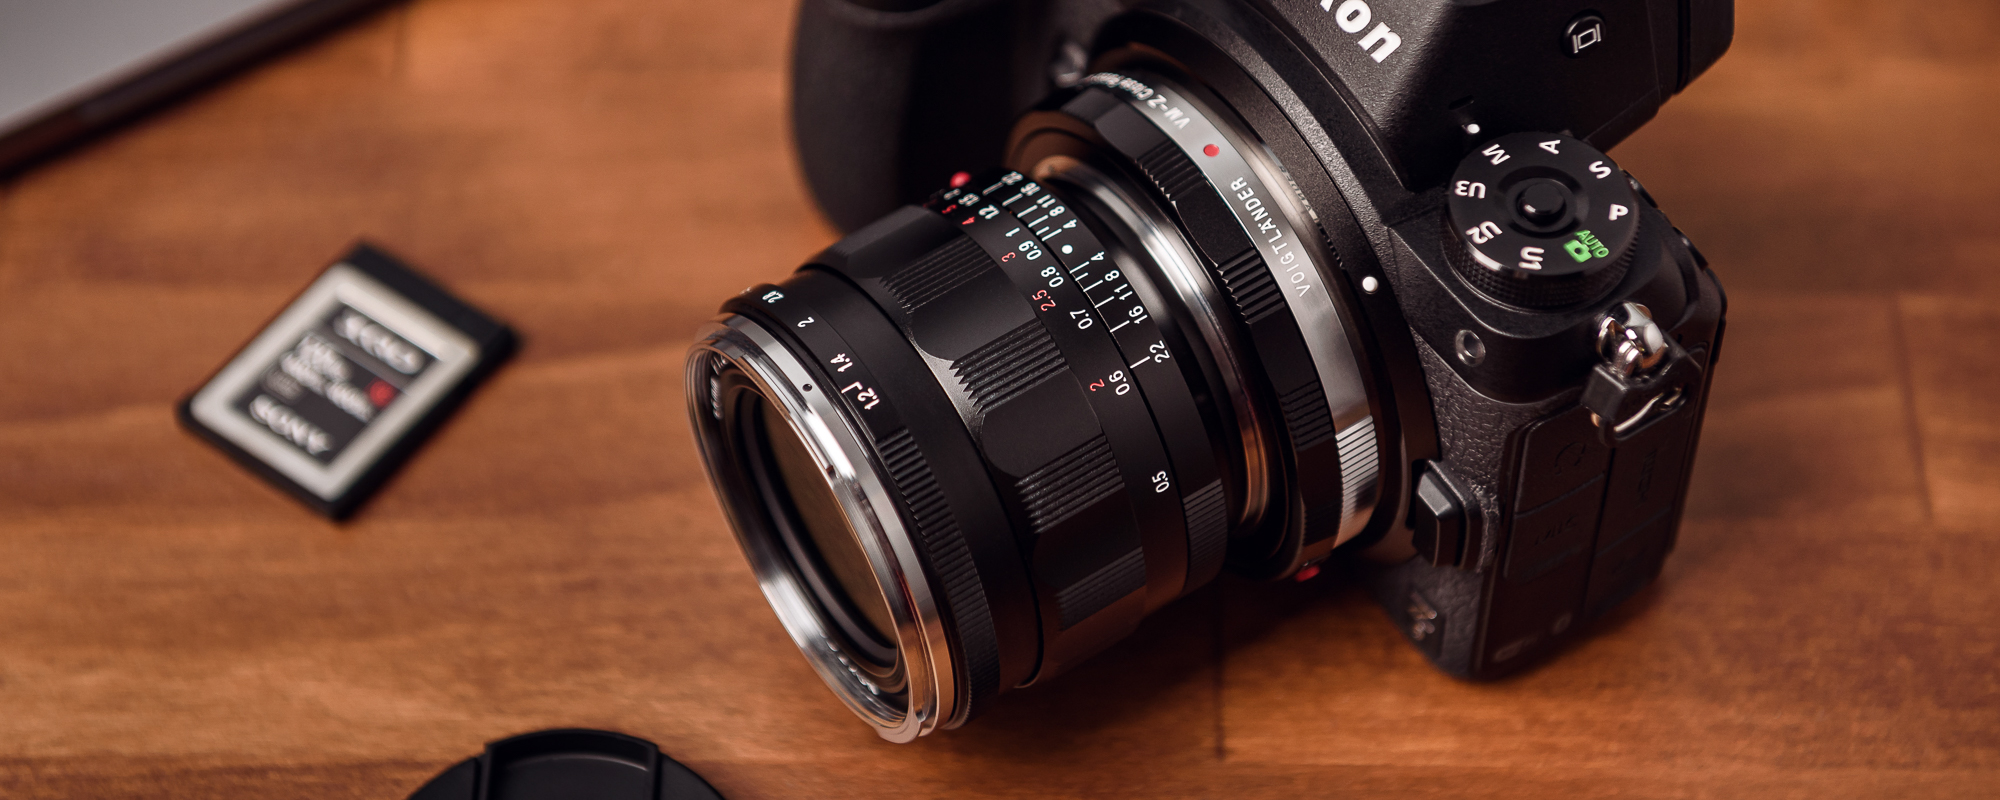 Voigtlander Nokton III 35mm f/1.2 lens for Leica M on wooden desk attached to Nikon Z6 with adapter